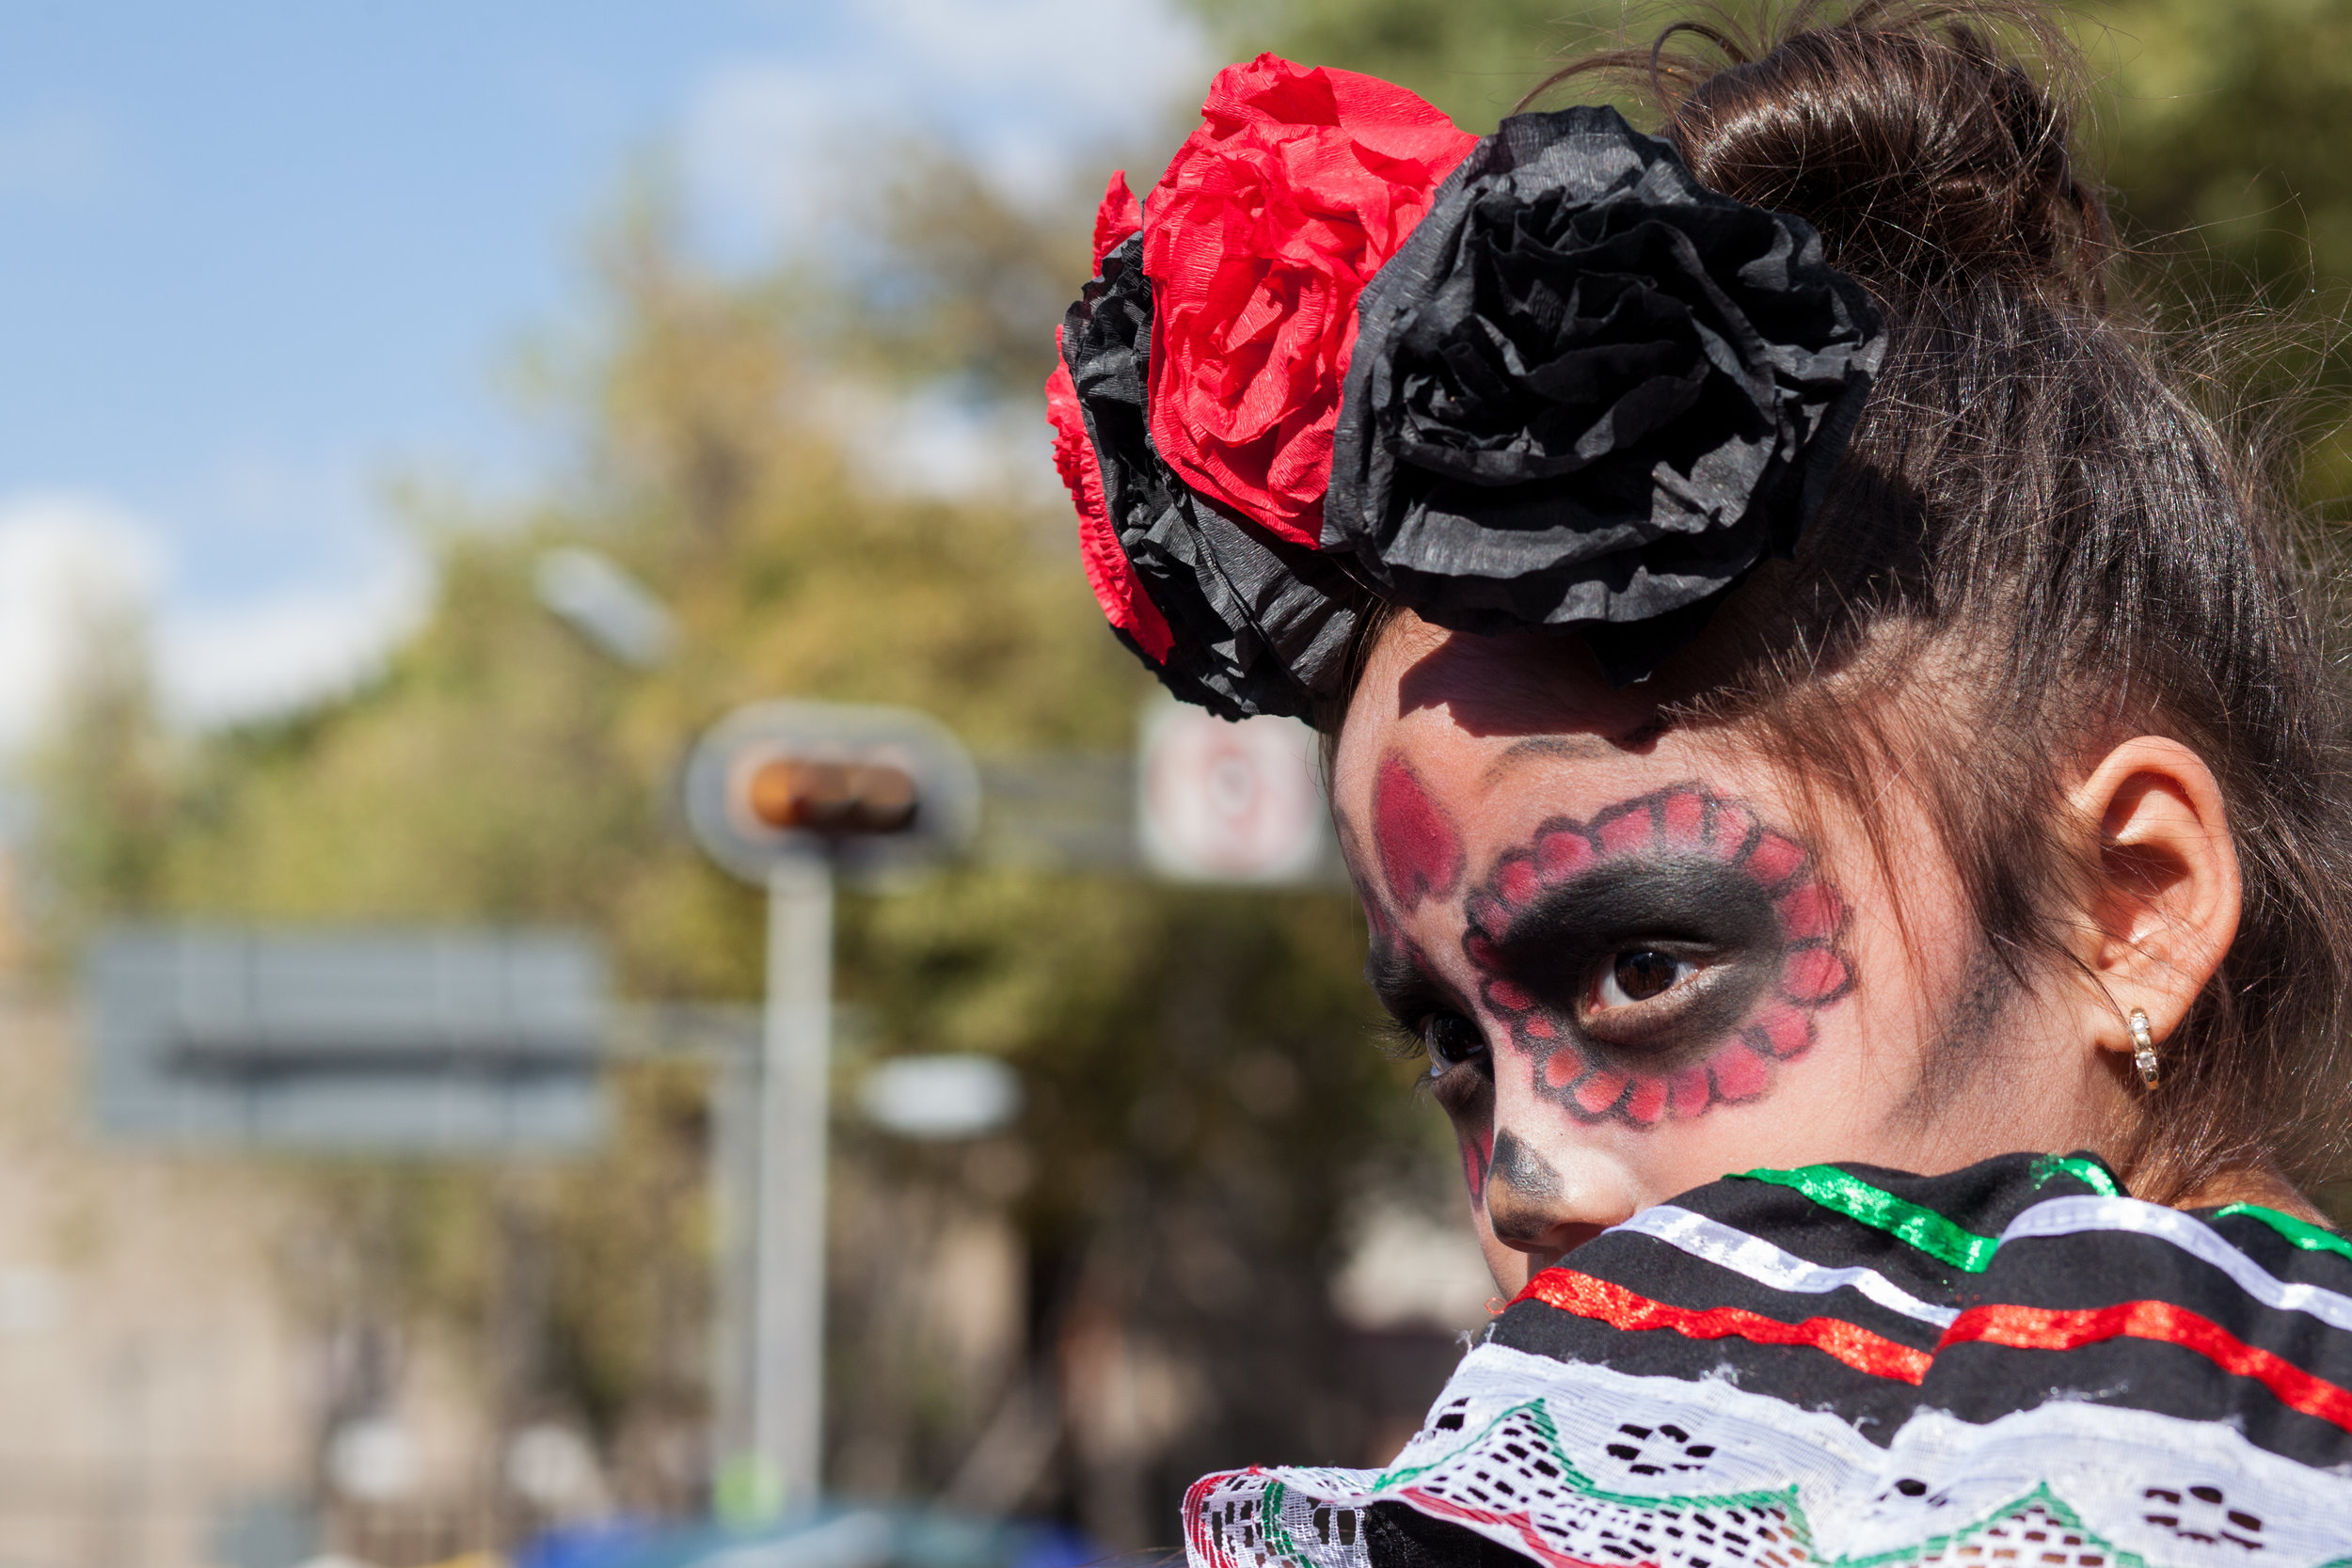 A girl wears make up for the Day of the Dead in District Federal, Mexico.